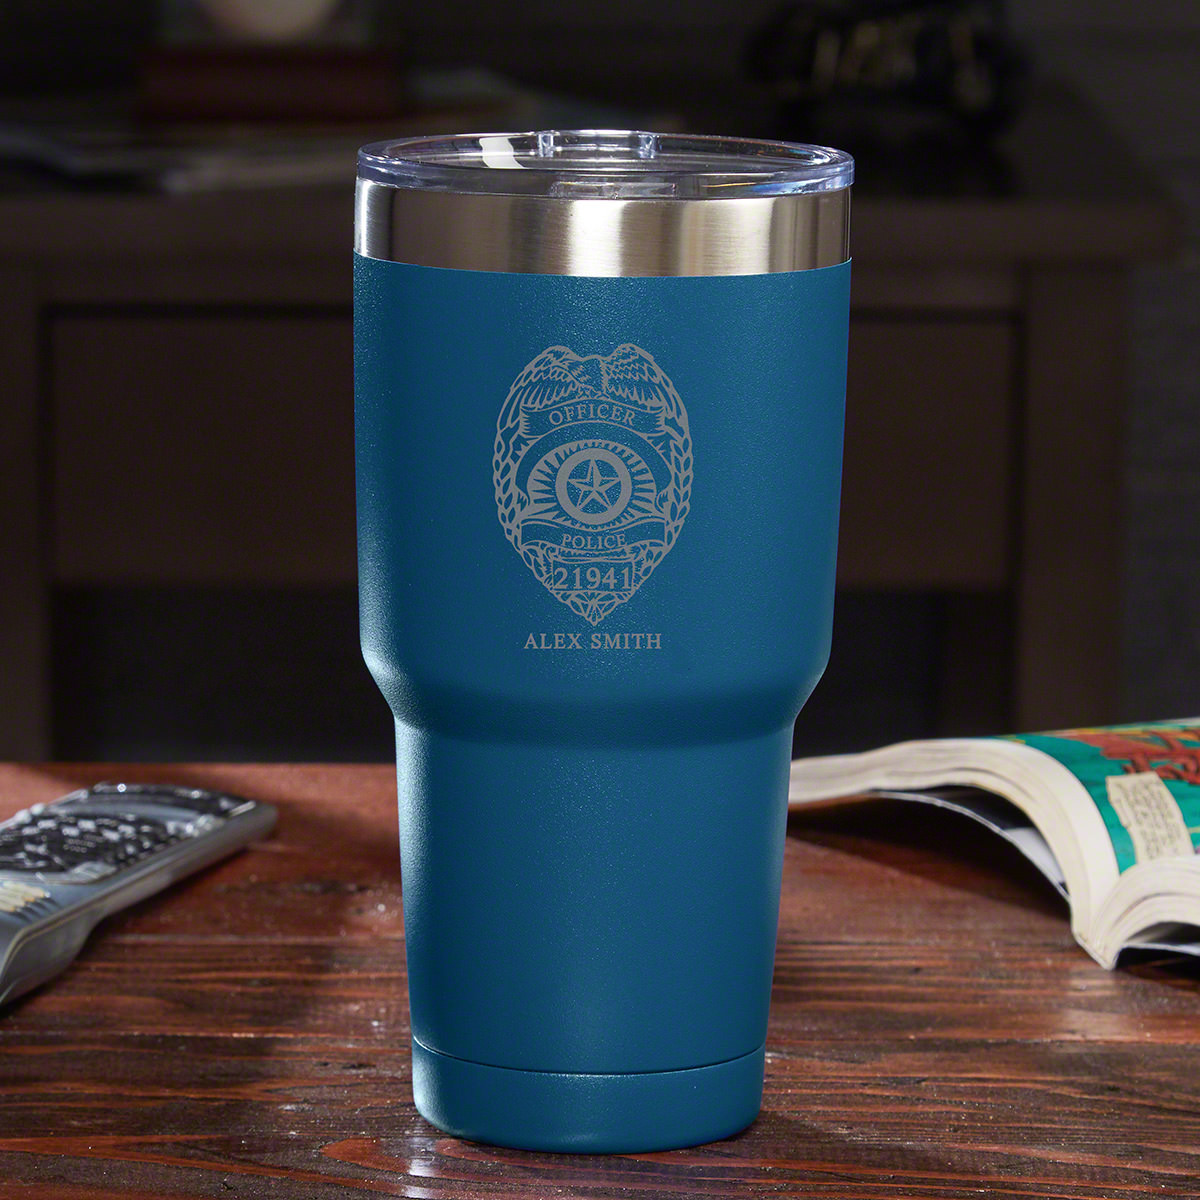 When you favorite officers get the Police Badge personalized travel mug in their hands, they'll never want to put it down. A Yeti-style drink tumbler, it's made from powerhouse 18/8 stainless steel. The double-wall, vacuum insulated construction keeps yo #mug